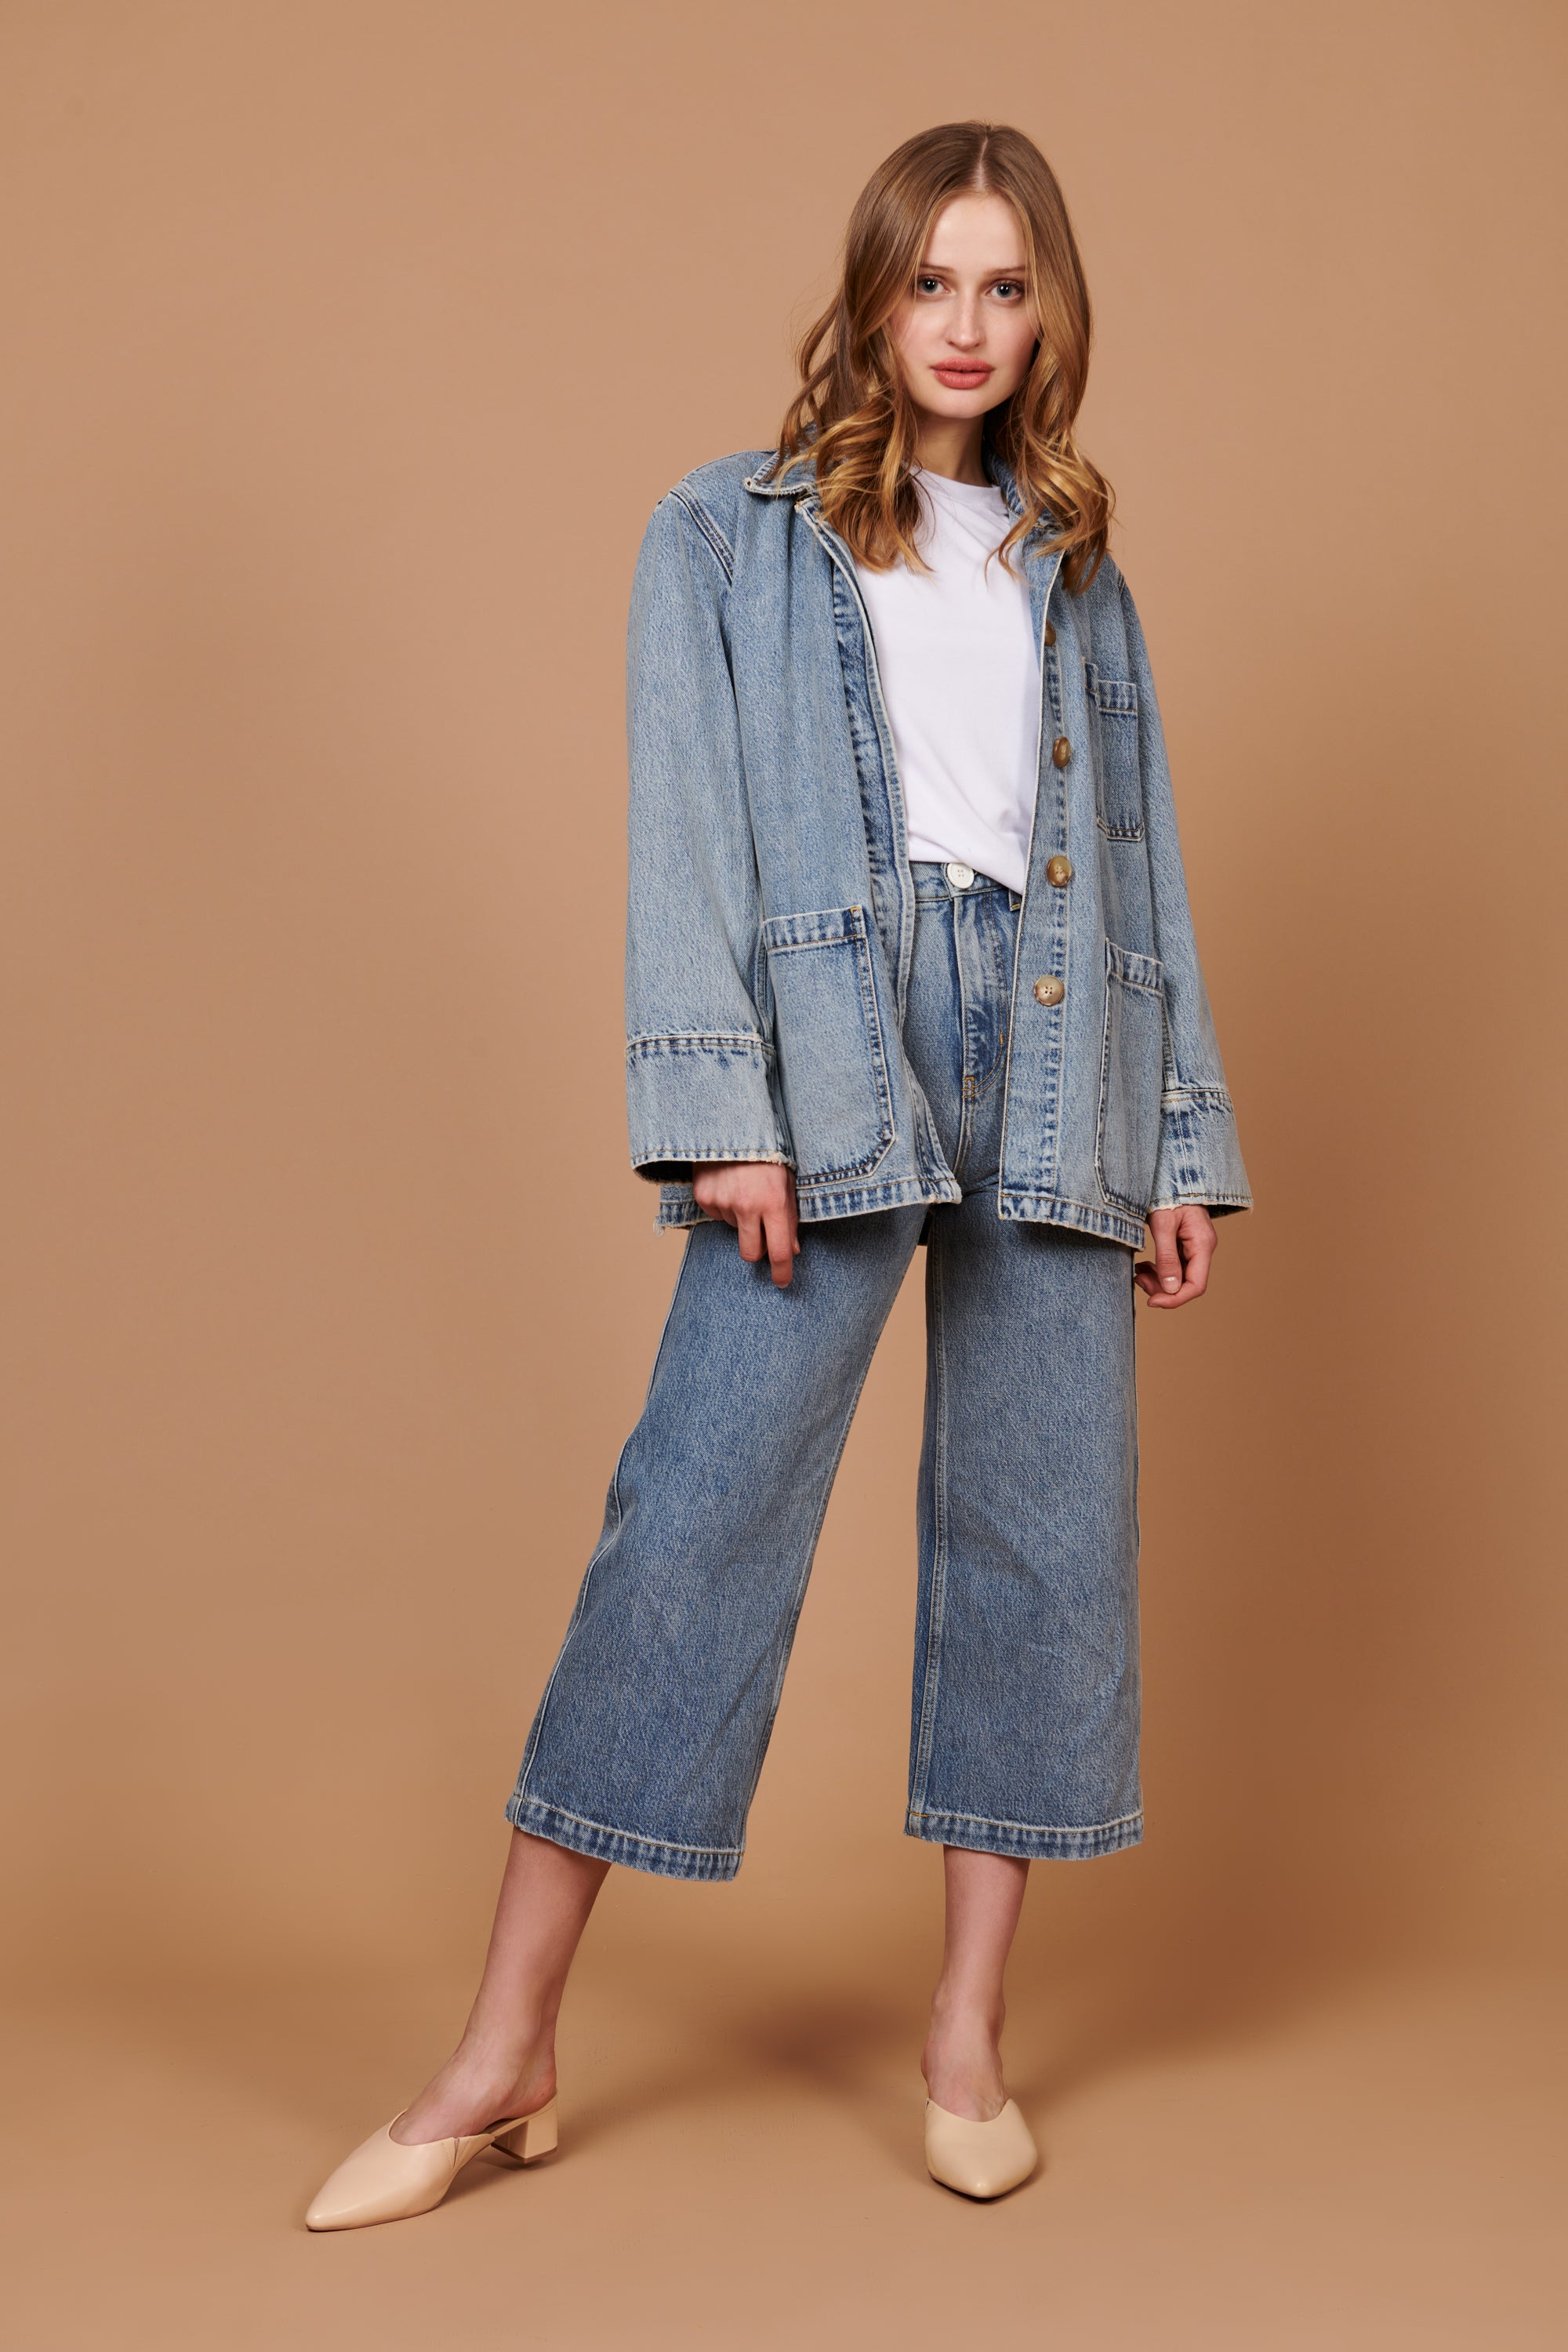 Whimsy + Row — Blog — Whimsy Does Denim